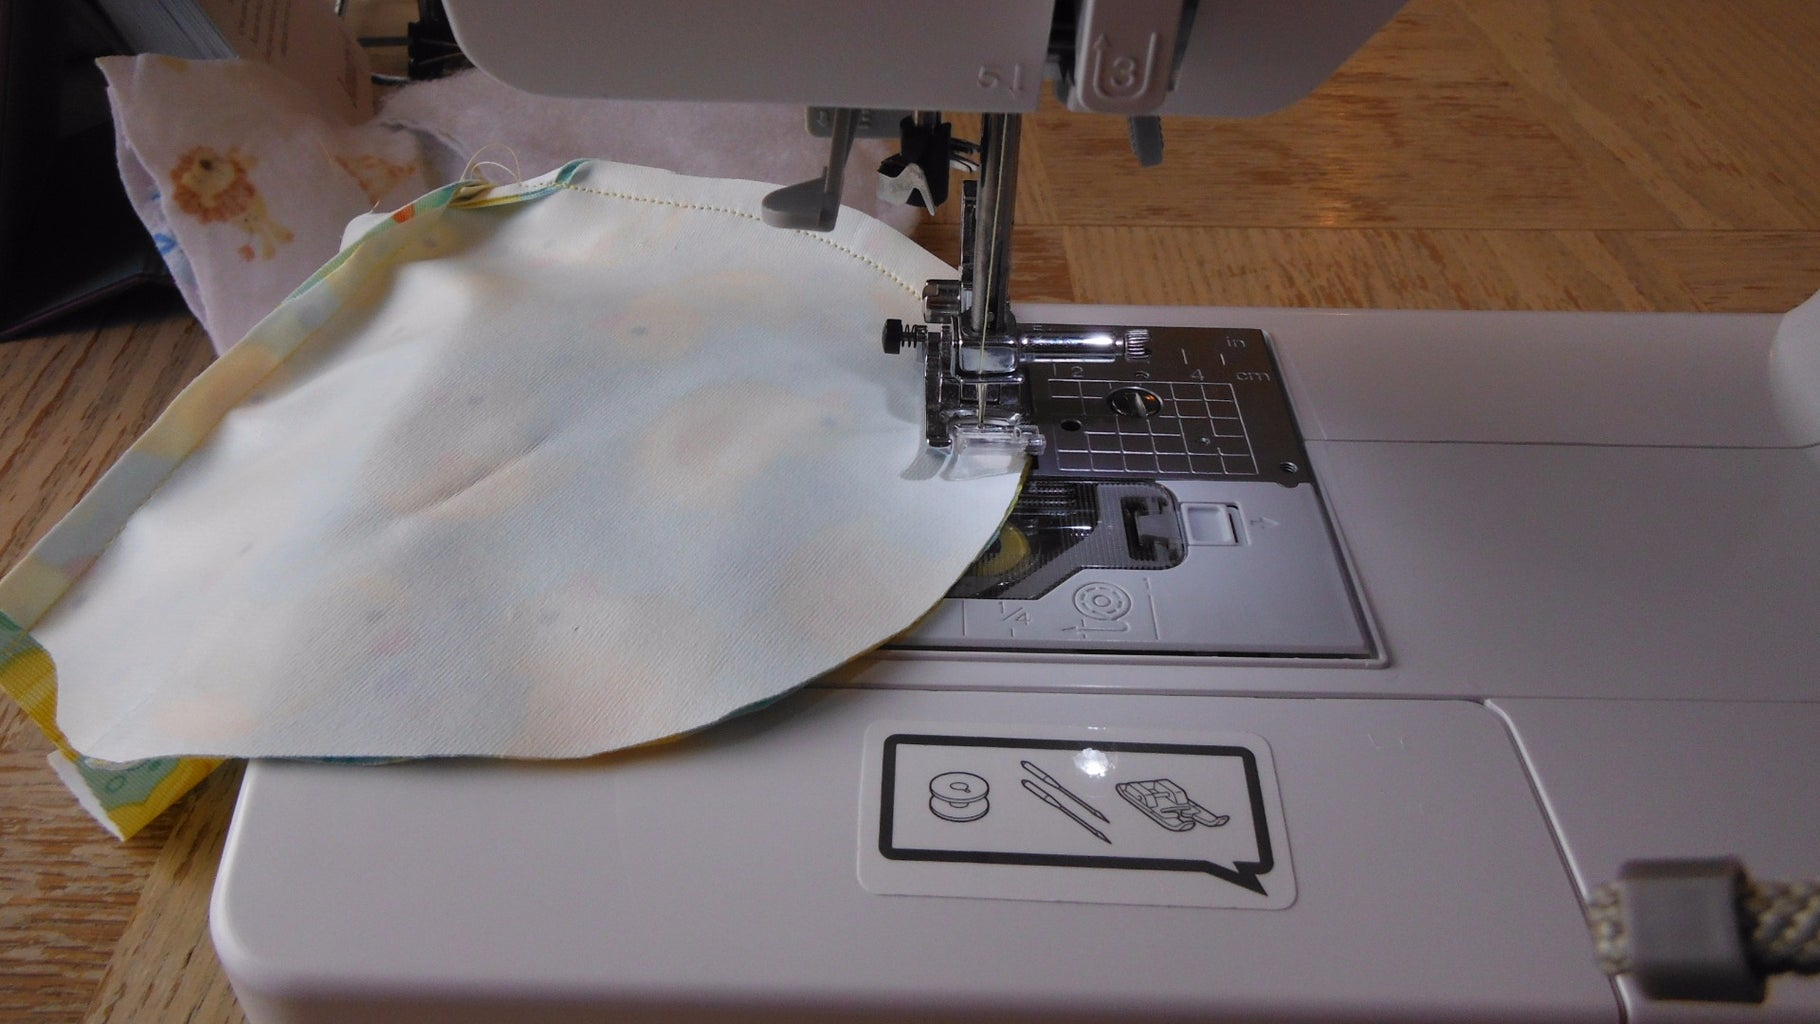 Sew Together the PUL Shell